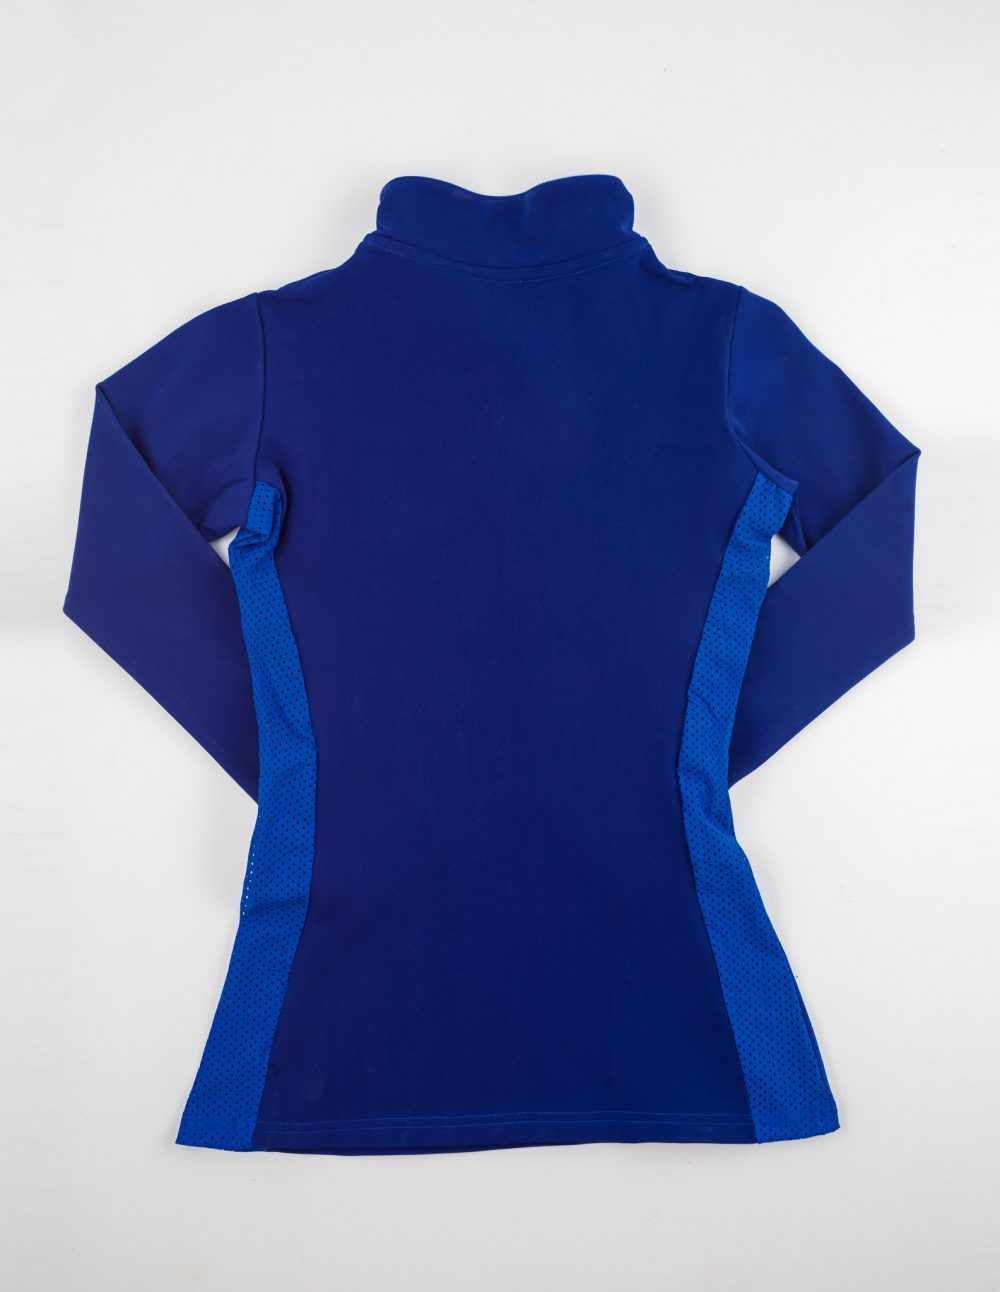 American Equus Technical Rider Wear - Base Layer Top Blue